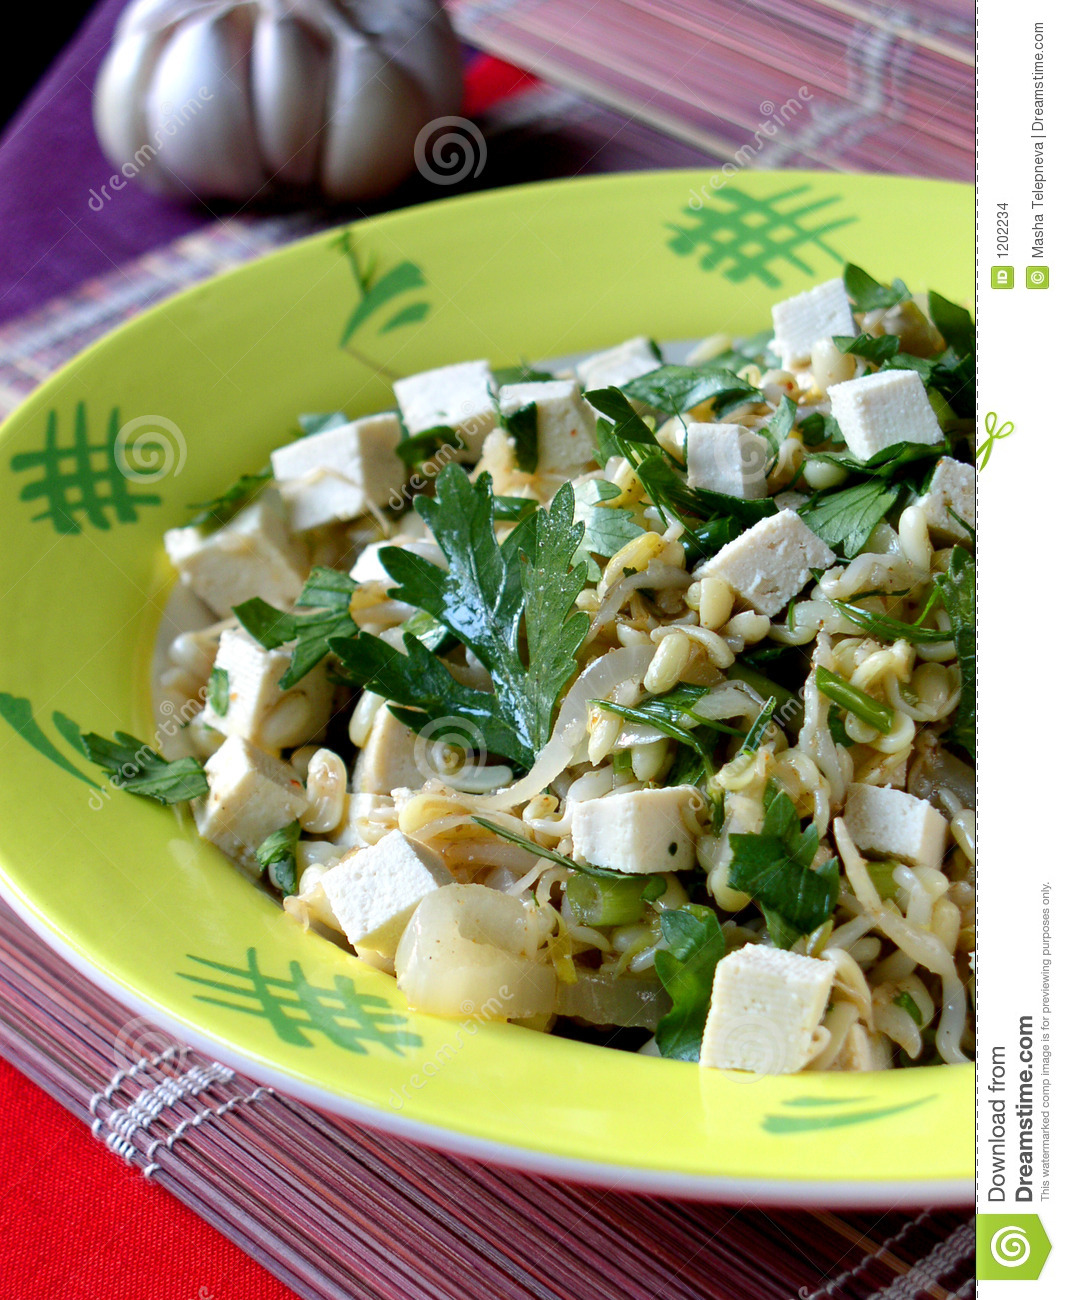 Asian salad with tofu and germinate soya-beans